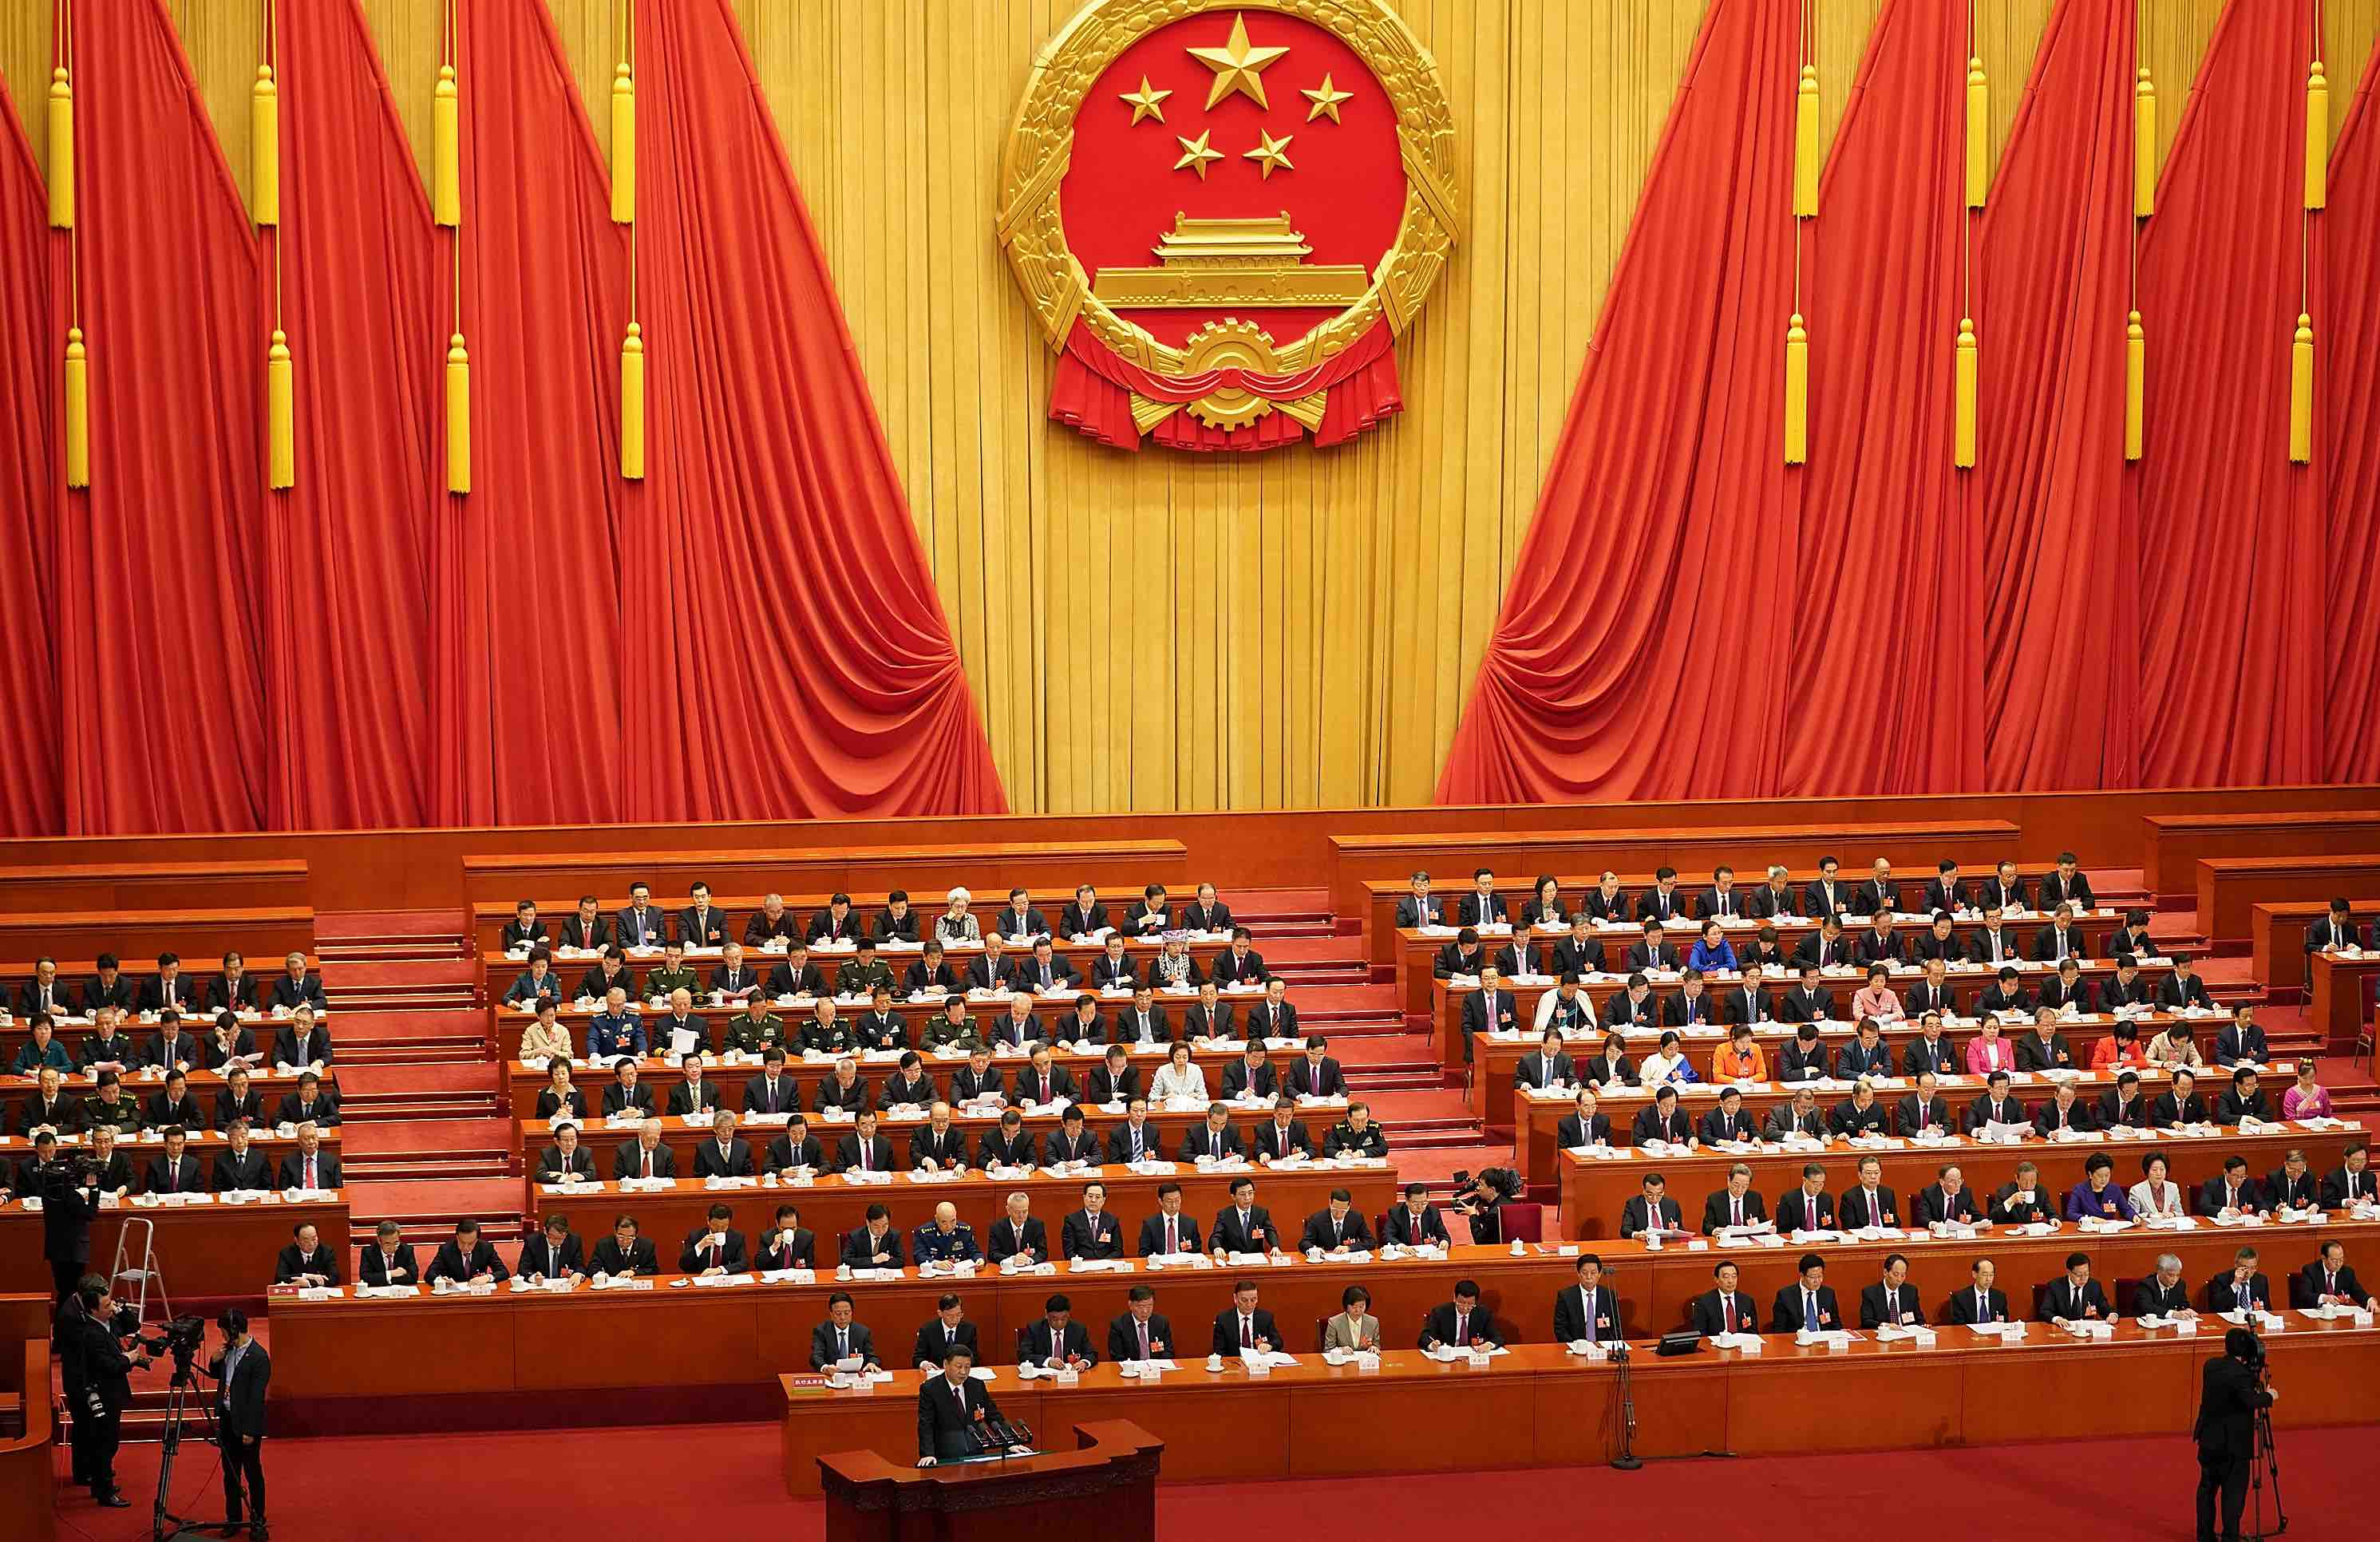 Closing session of the National People's Congress in March (Photo: Lintao Zhang/Getty)